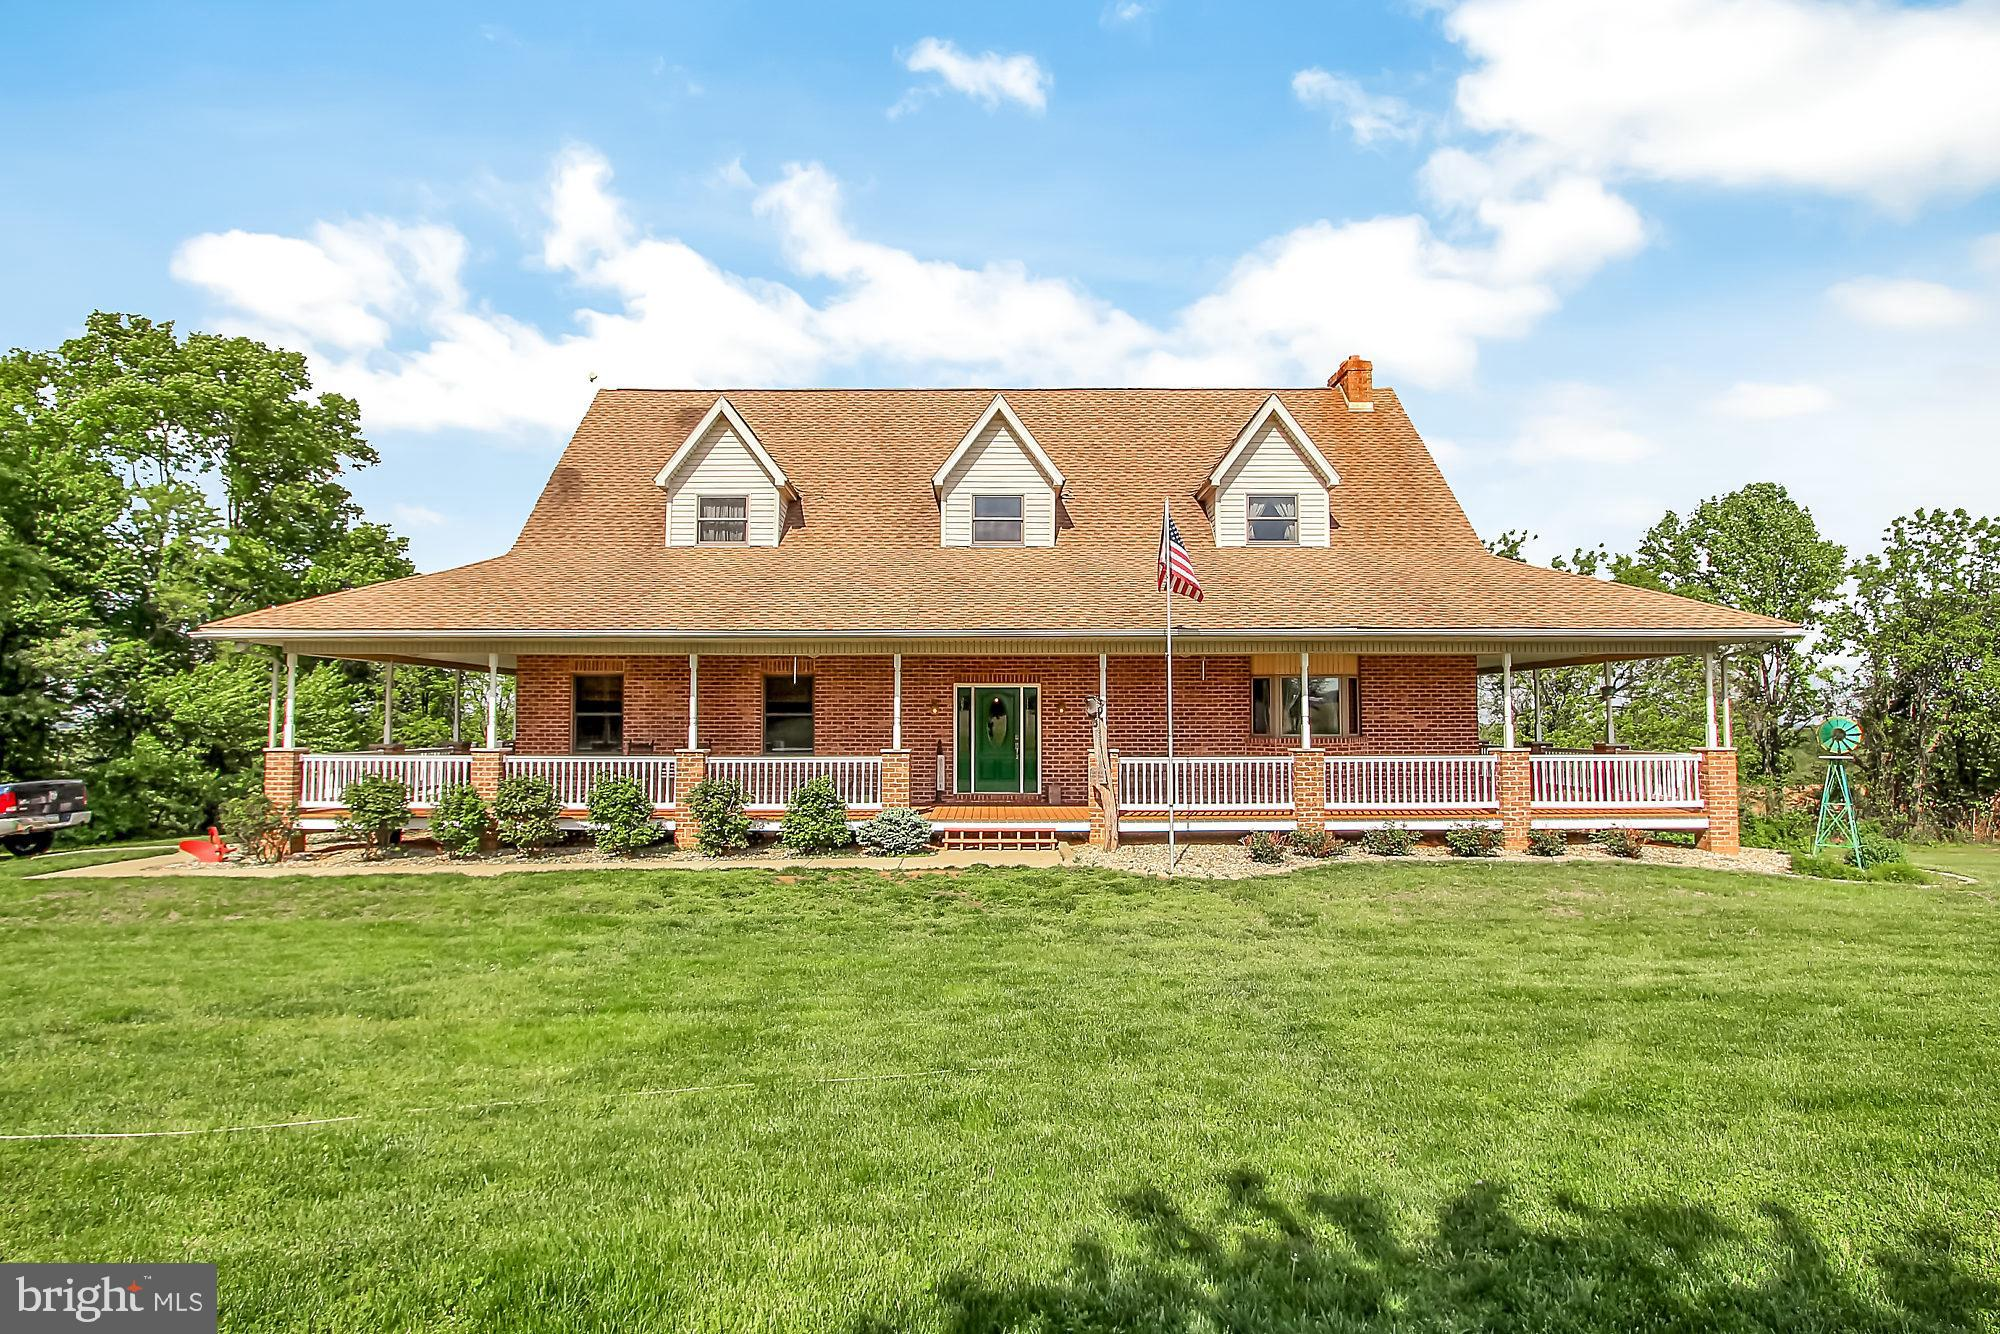 9185 HIGH ROCK ROAD, NEW PARK, PA 17352